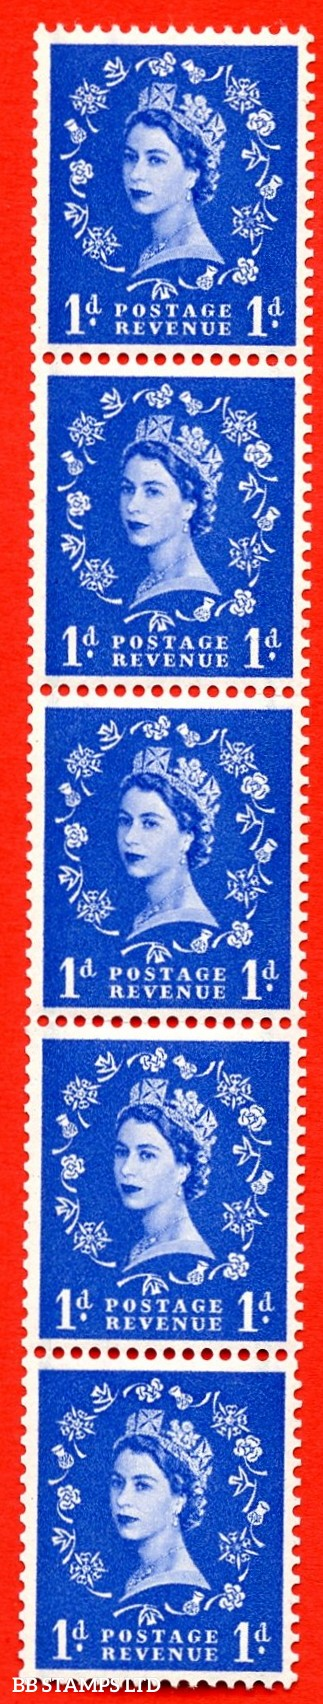 SG. 562b. S15d. 1d Ultramarine. A superb UNMOUNTED MINT example. Upright coil strip of 5. With a Stop omitted. ERROR. Roll 3 variety.